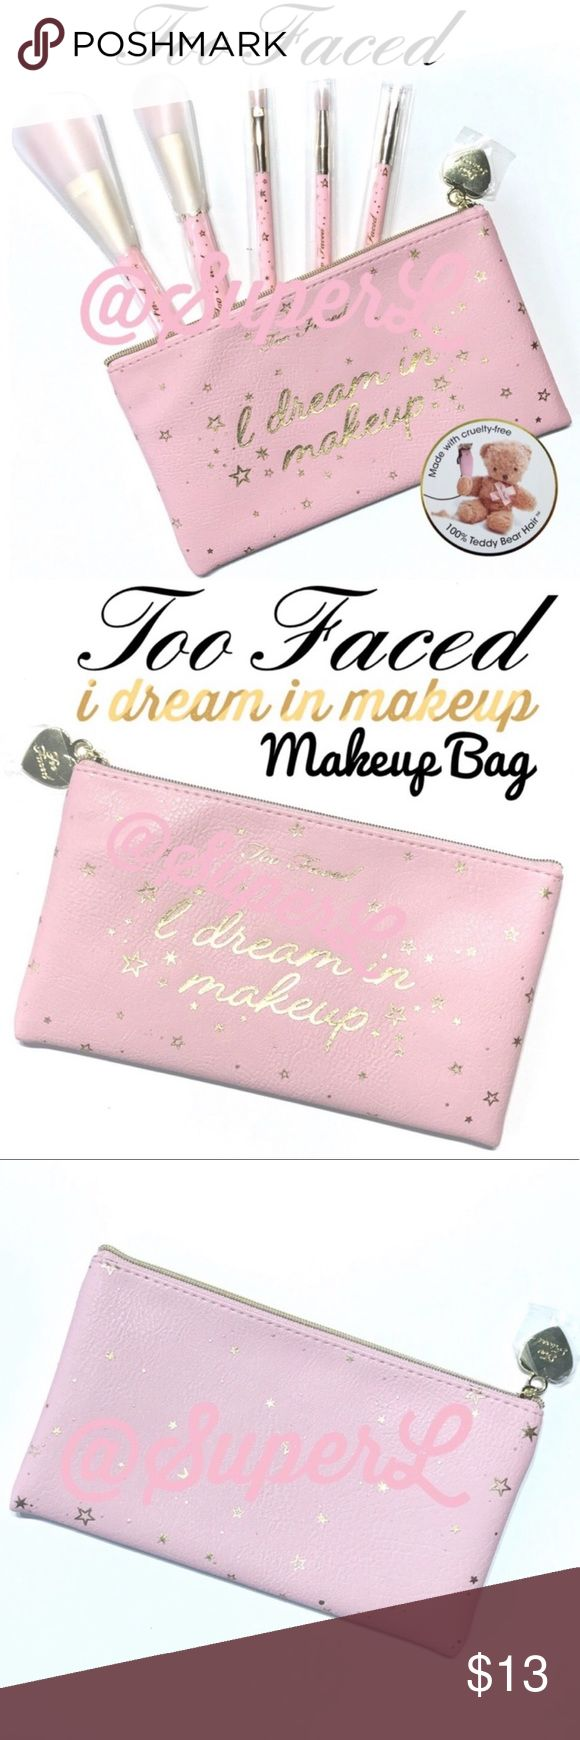 2/15 Too Faced I dream in makeup Bag Pouch Pink Makeup